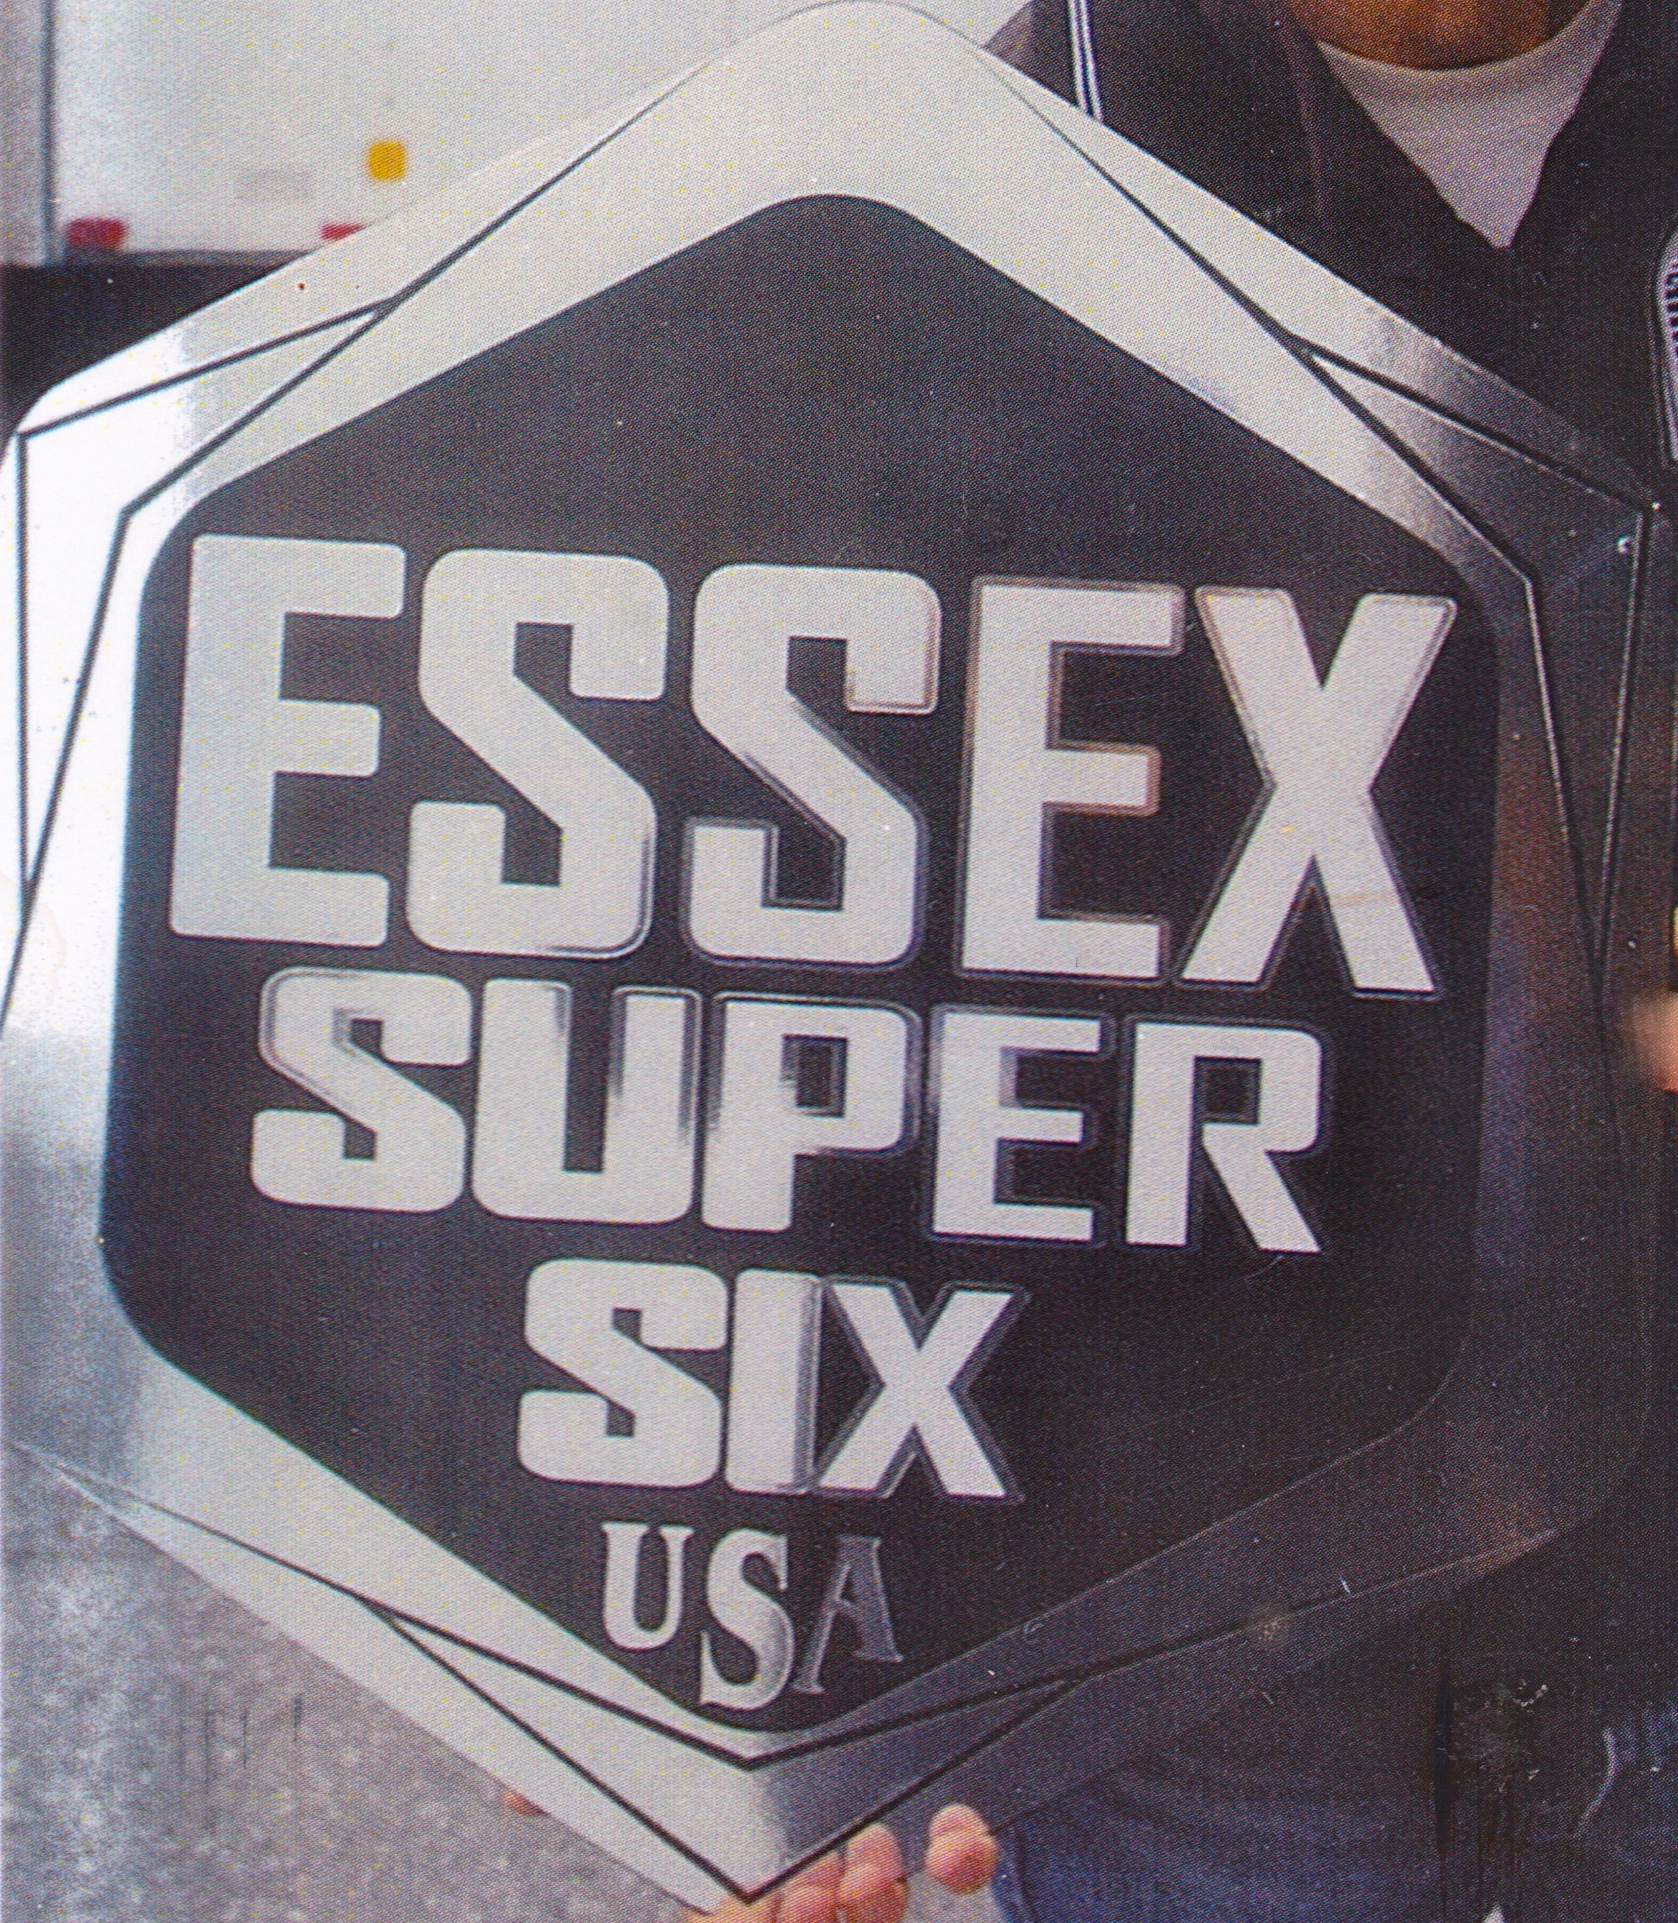 Essex First Series 1930 #2